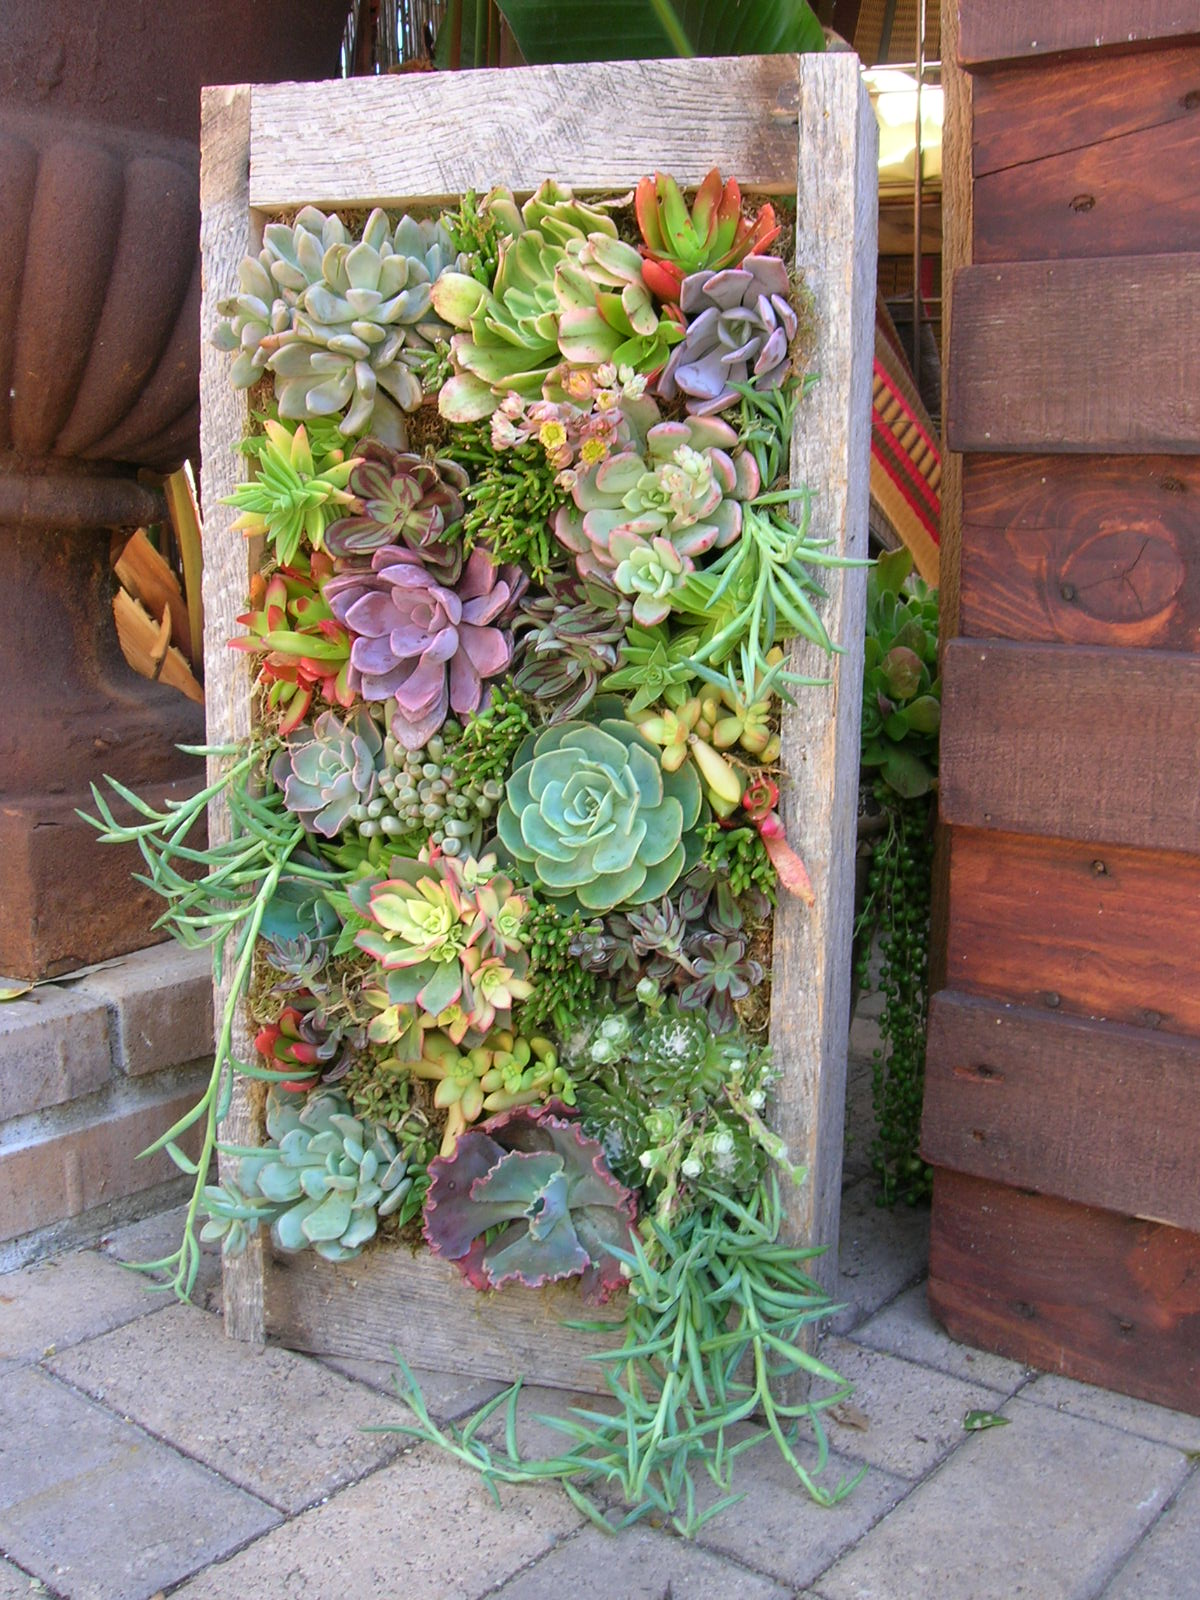 50 Best Succulent Garden Ideas for 2017 on Tree Planting Ideas For Backyard id=98307